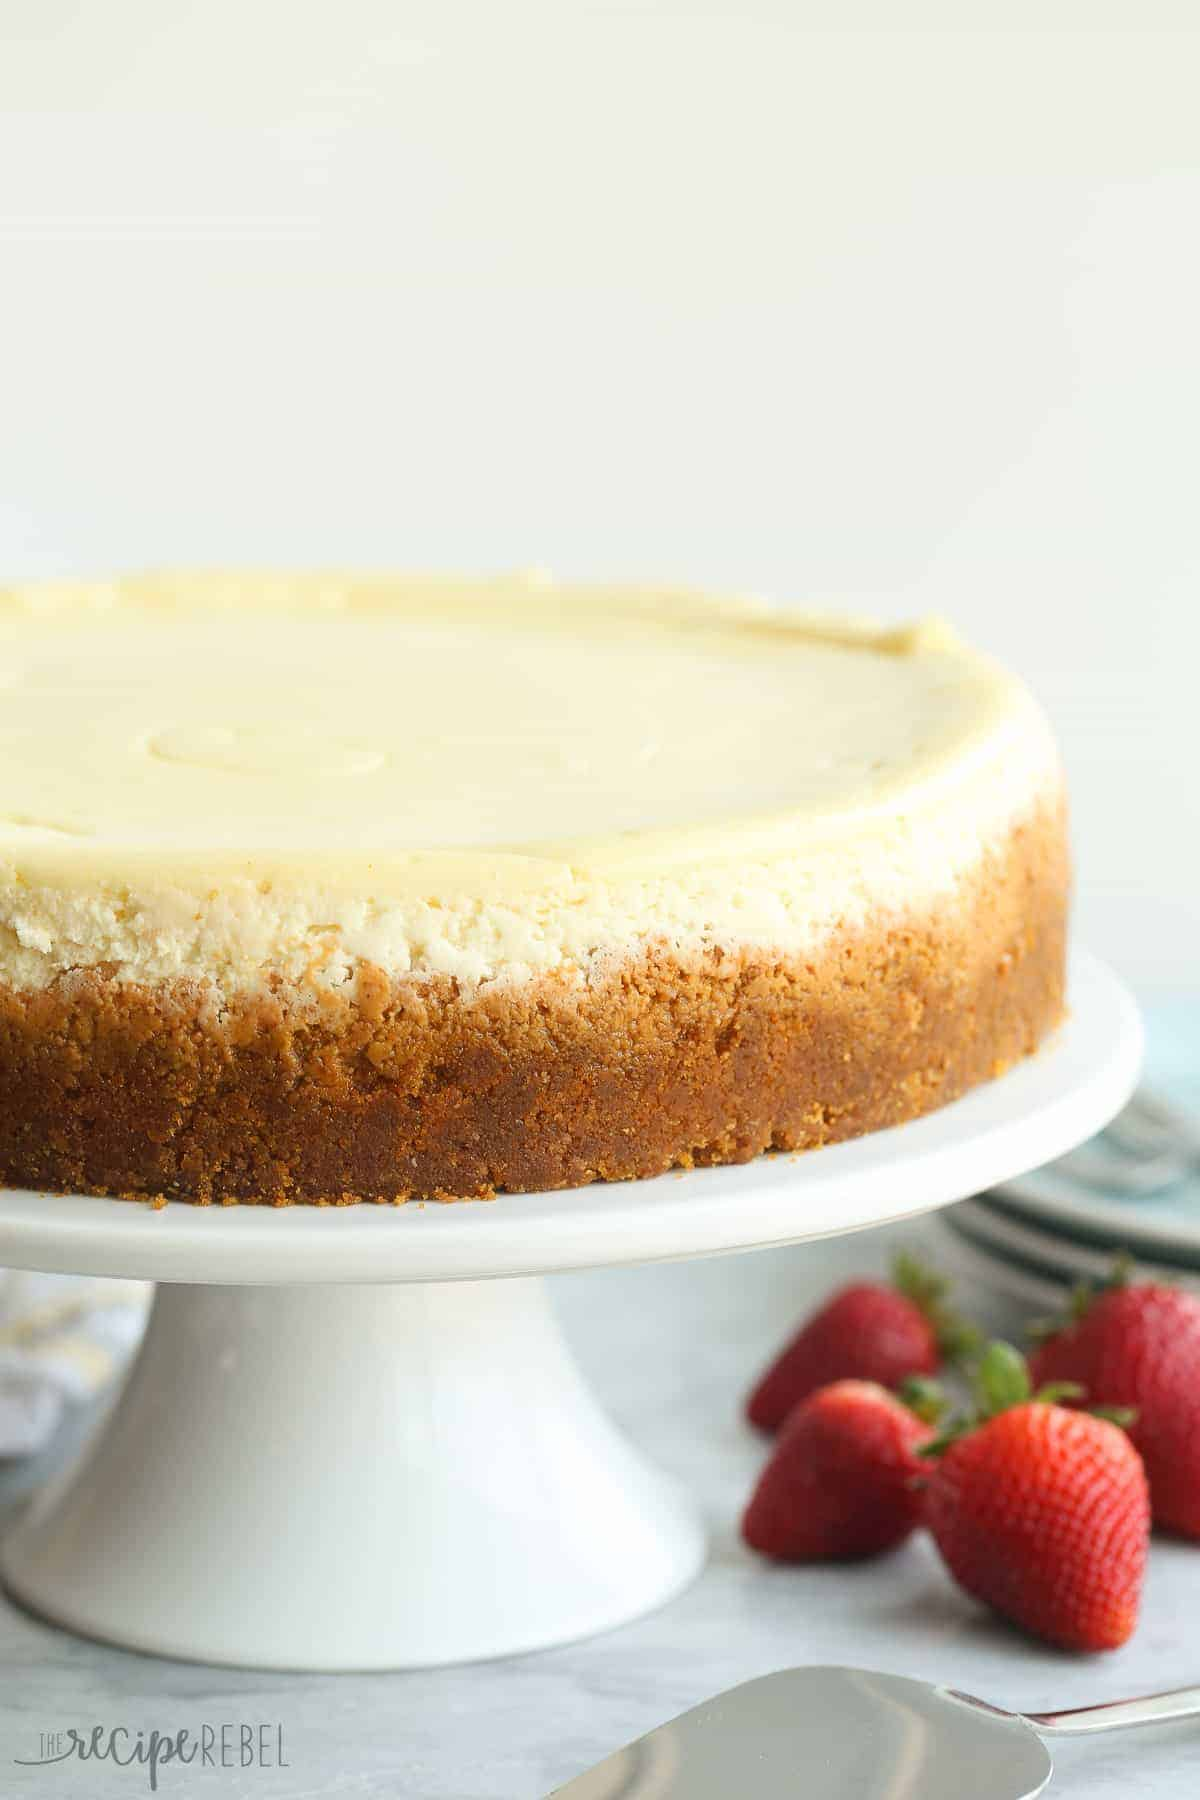 This Vanilla Cheesecake is super creamy and not as heavy as traditional baked cheesecake thanks to a good dose of sour cream -- it's soft and luscious and perfect with fresh berries!